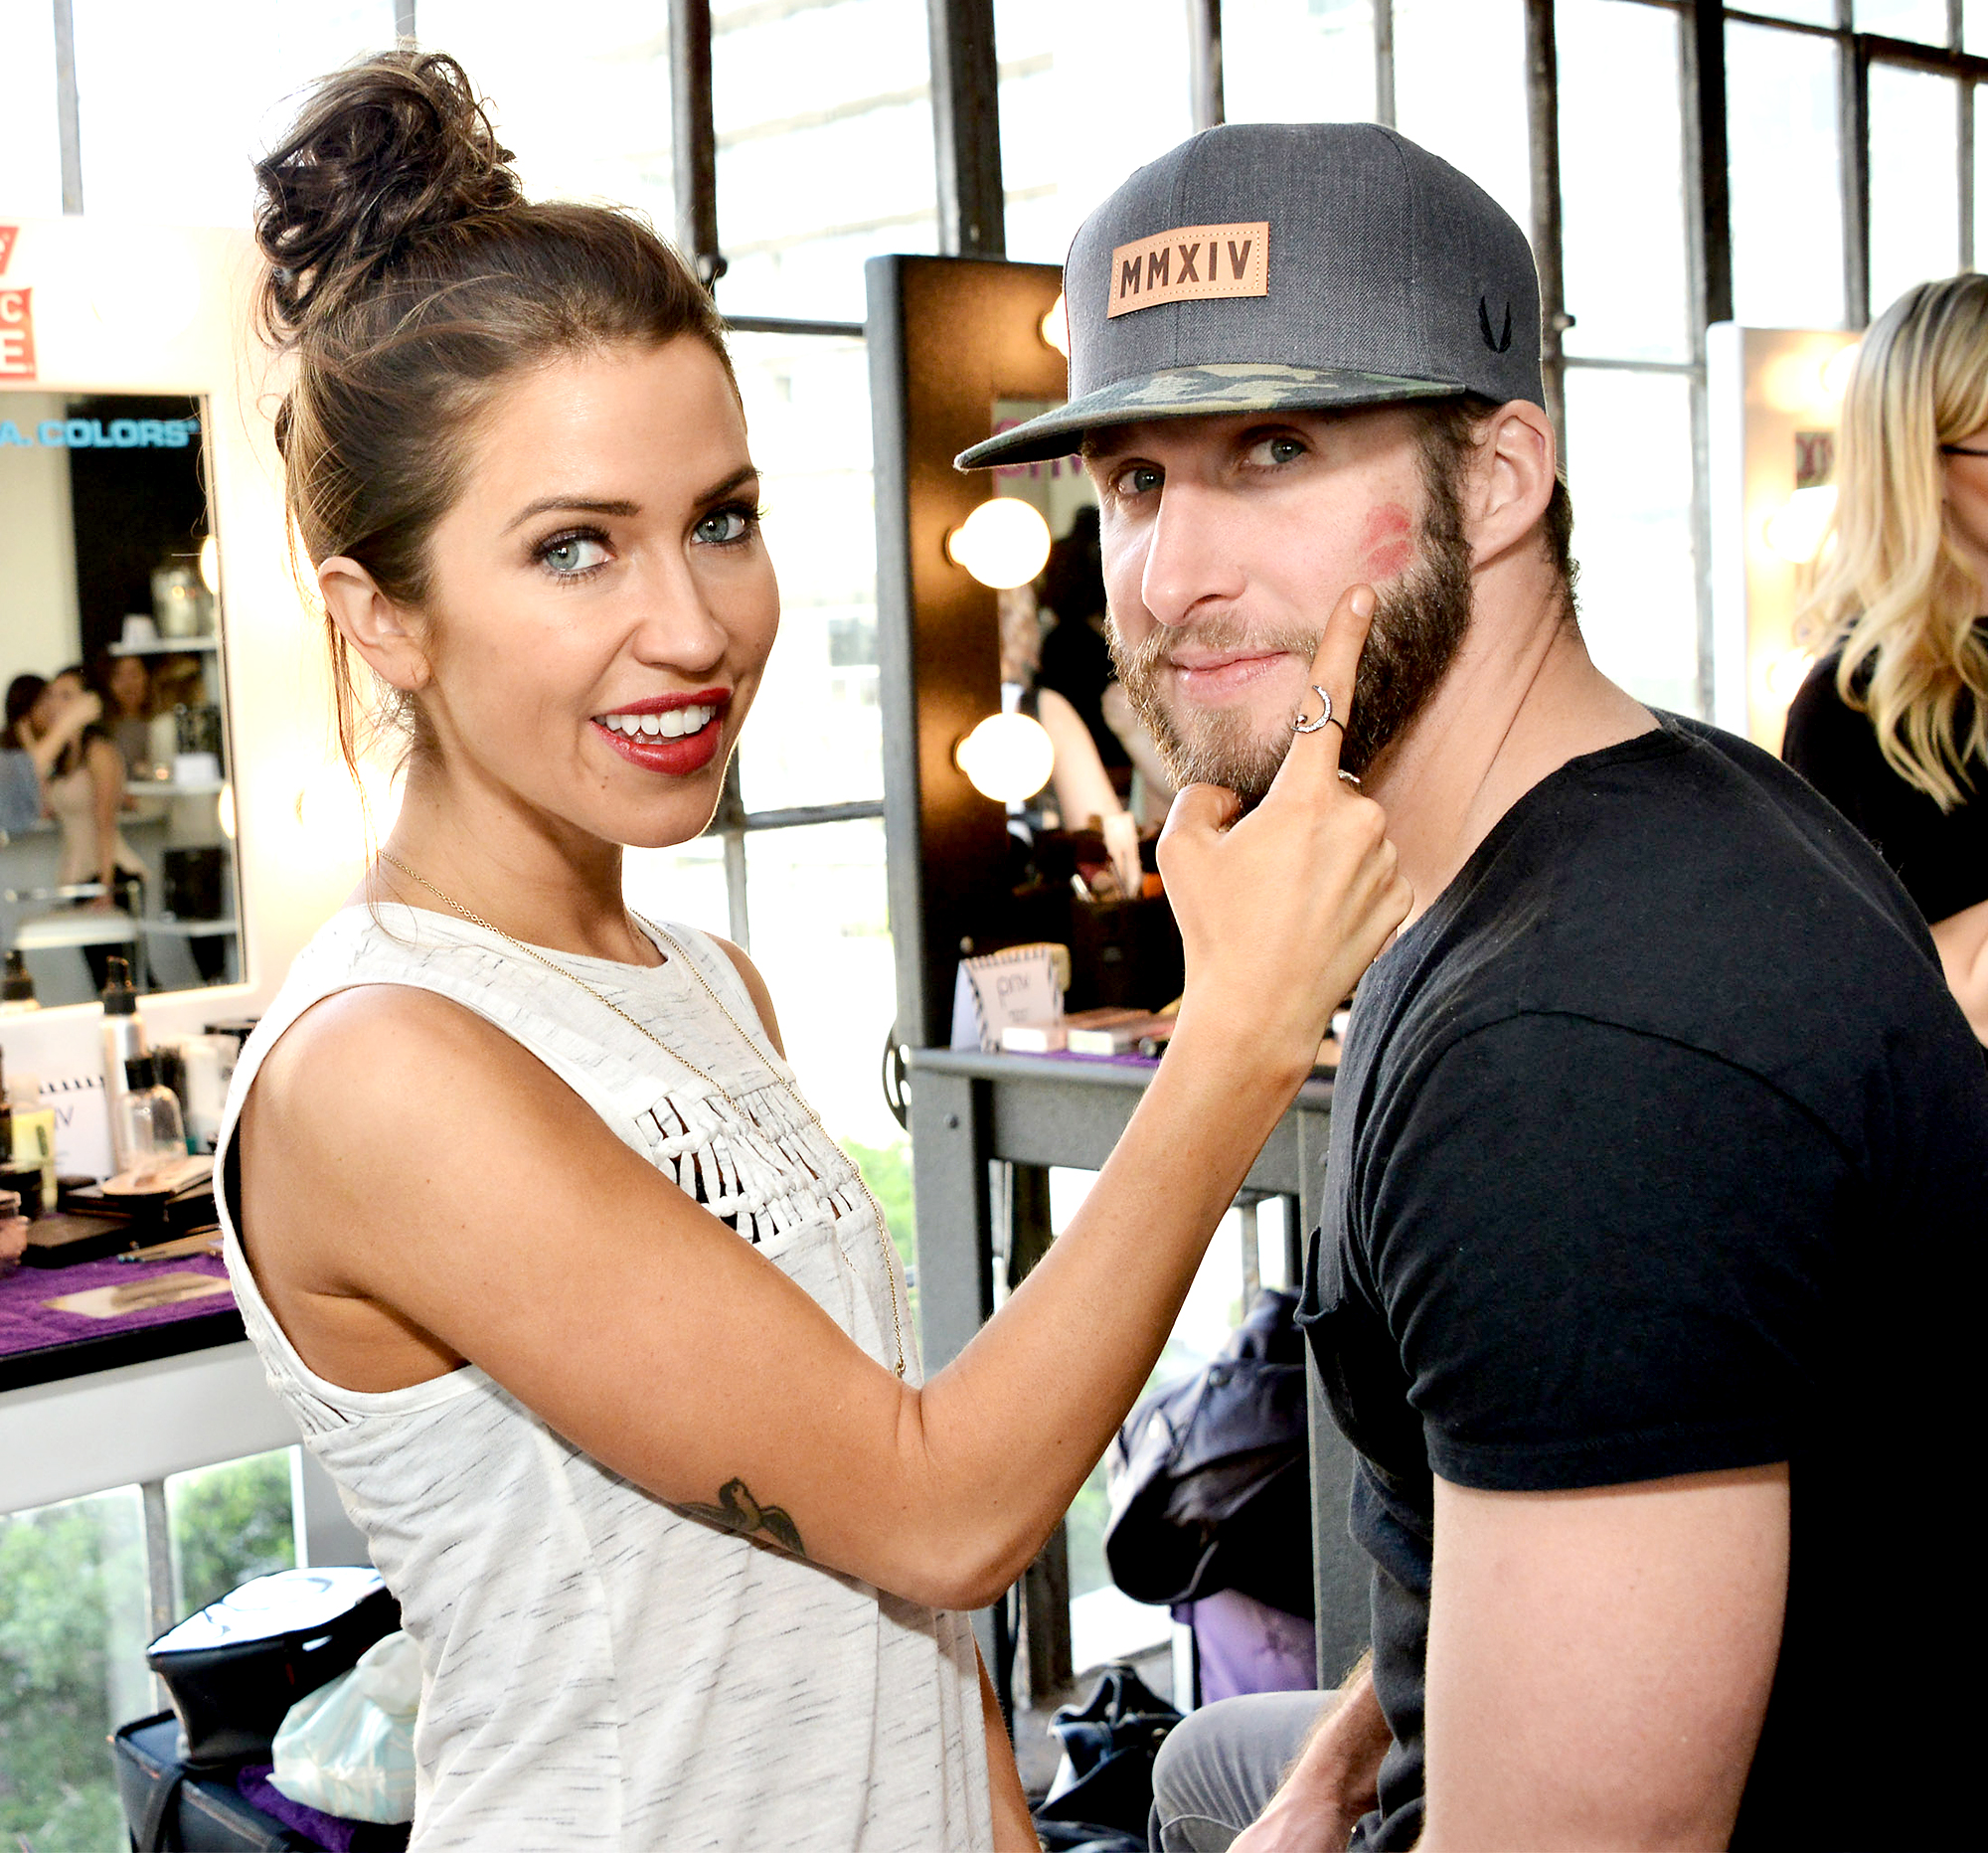 """Kaitlyn-Bristowe-and-Shawn-Booth - The personal trainer admitted that he was struggling with the loss of his relationship — and his closest pal — while appearing on the """"Almost Famous: In Depth"""" podcast in January 2019. """"Not only were we engaged, it's like, 'Man, I lost my best friend too. ... It just feels like everything is completely gone — like, Kaitlyn and Shawn gone, everything we've had, everything we've been through. You know, we were this team and we got through a lot of stuff together, but then just, like, in an instant it's all gone."""""""